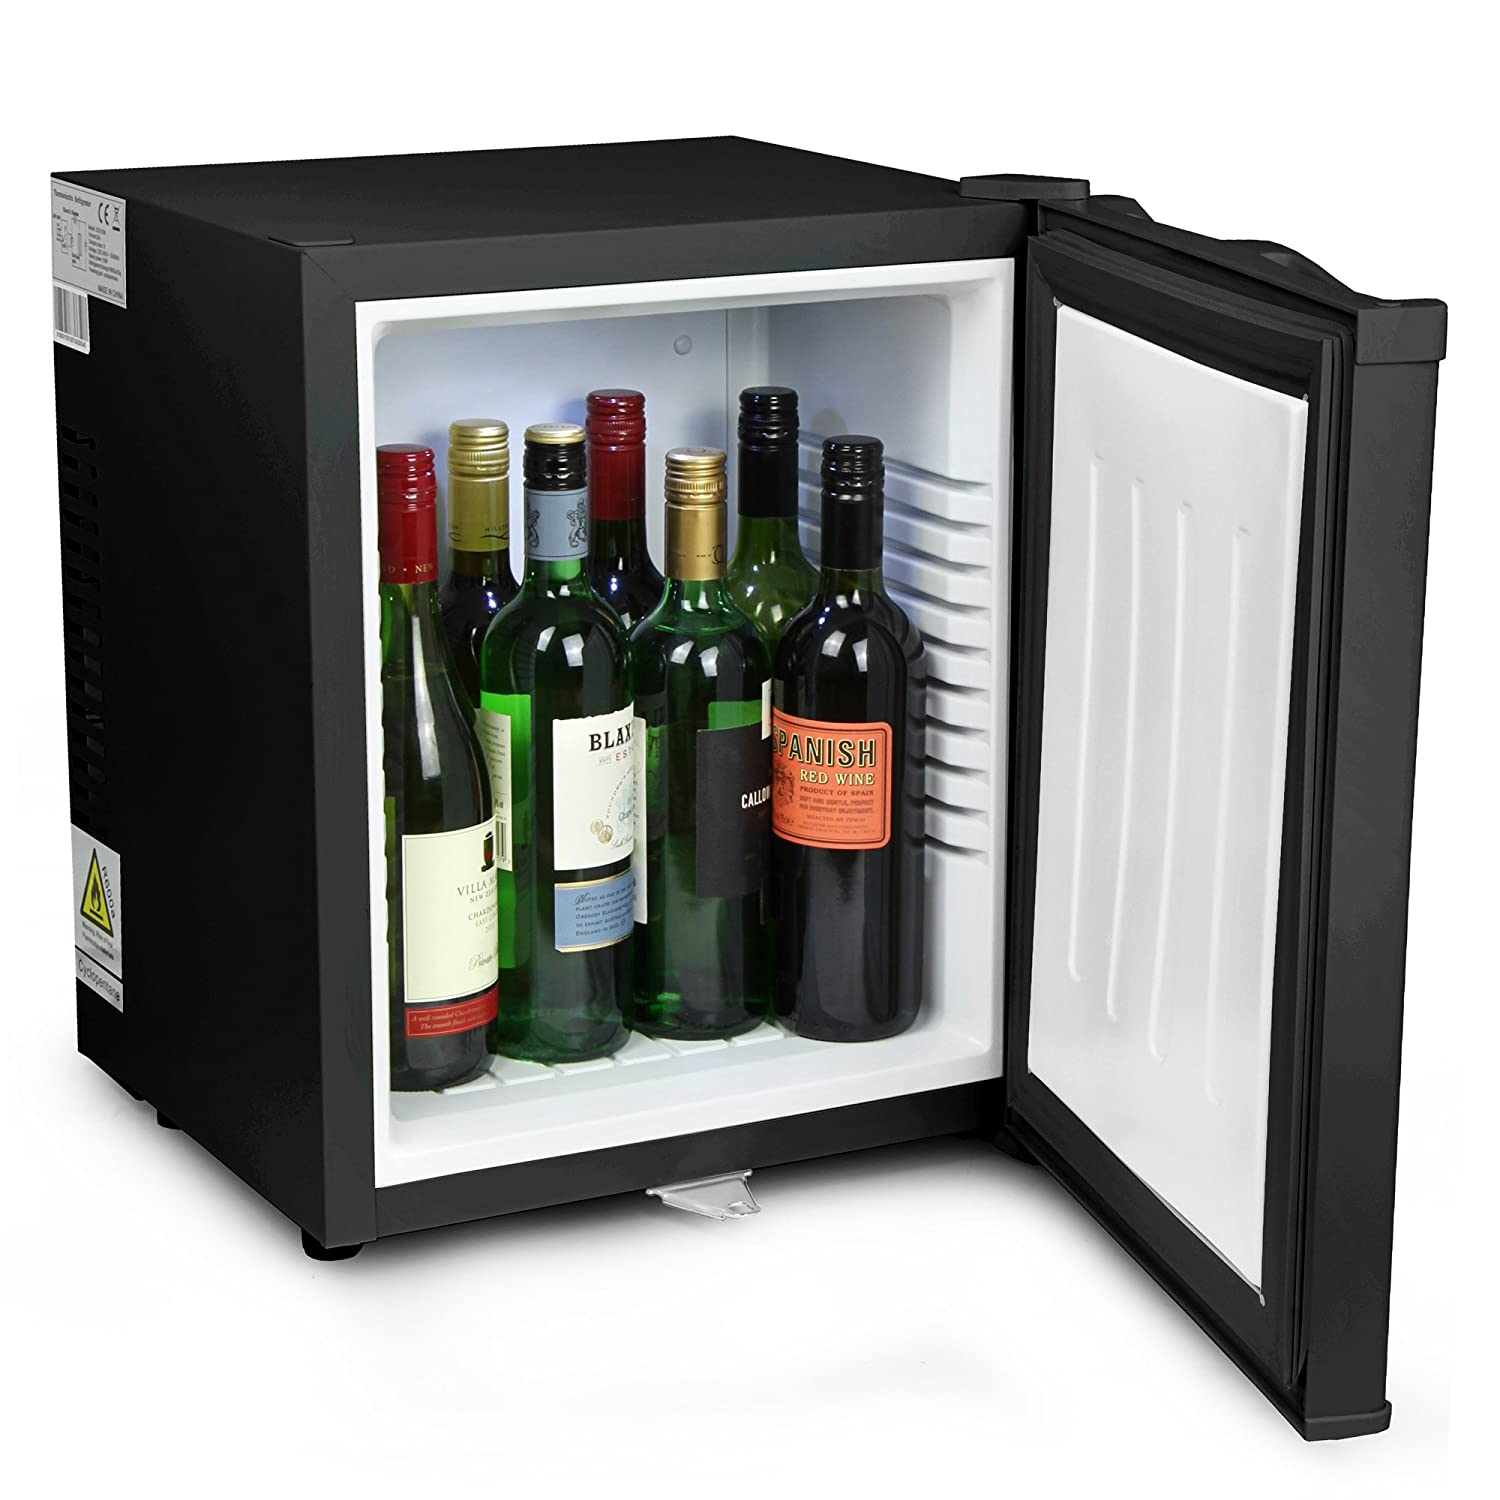 bar@drinkstuff ChillQuiet Silent Mini Fridge 24ltr Black - Completely Quiet Mini Bar, Ideal for Hotels and B&Bs